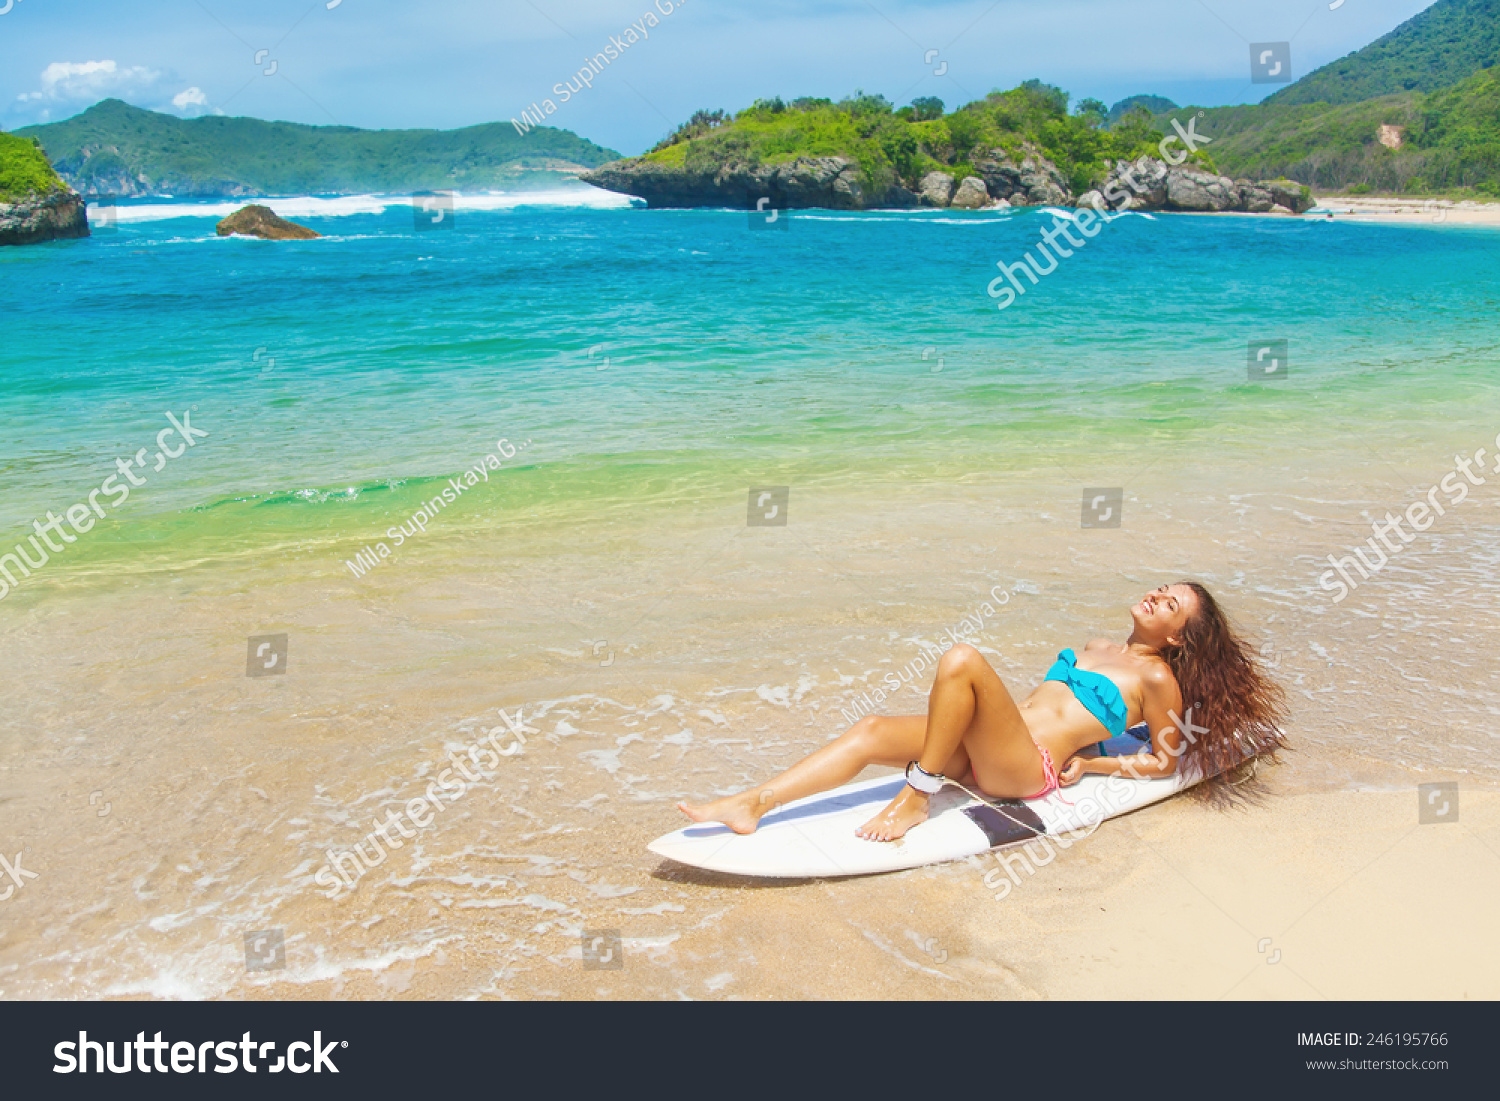 Woman Swimsuit Resting Over Surf Boar Stock Photo Edit Now 246195766 Surfboards and surfboard gear available for sale. https www shutterstock com image photo woman swimsuit resting over surf boar 246195766